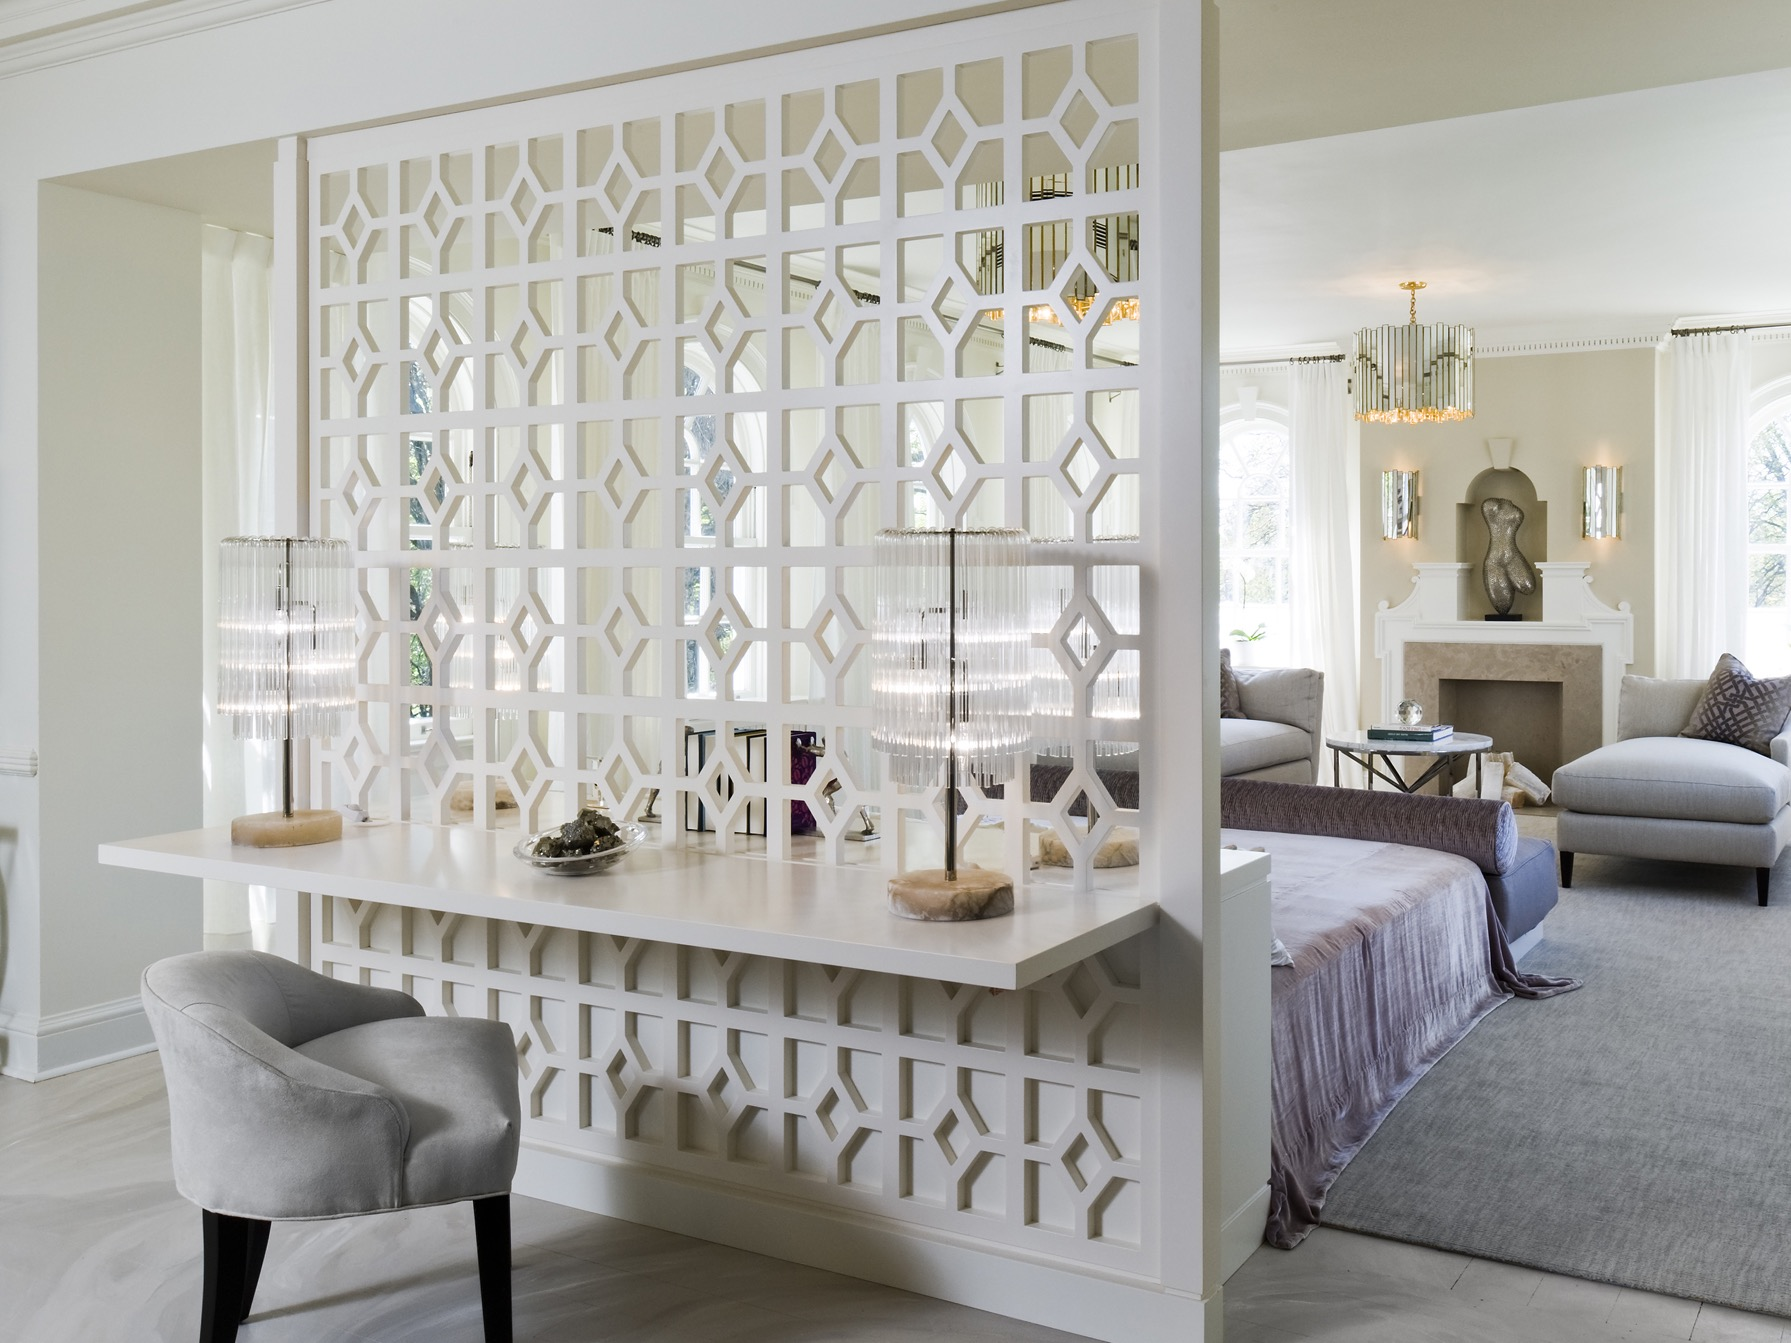 Modern Textured Room Divider For Bedroom Apartment (View 6 of 14)